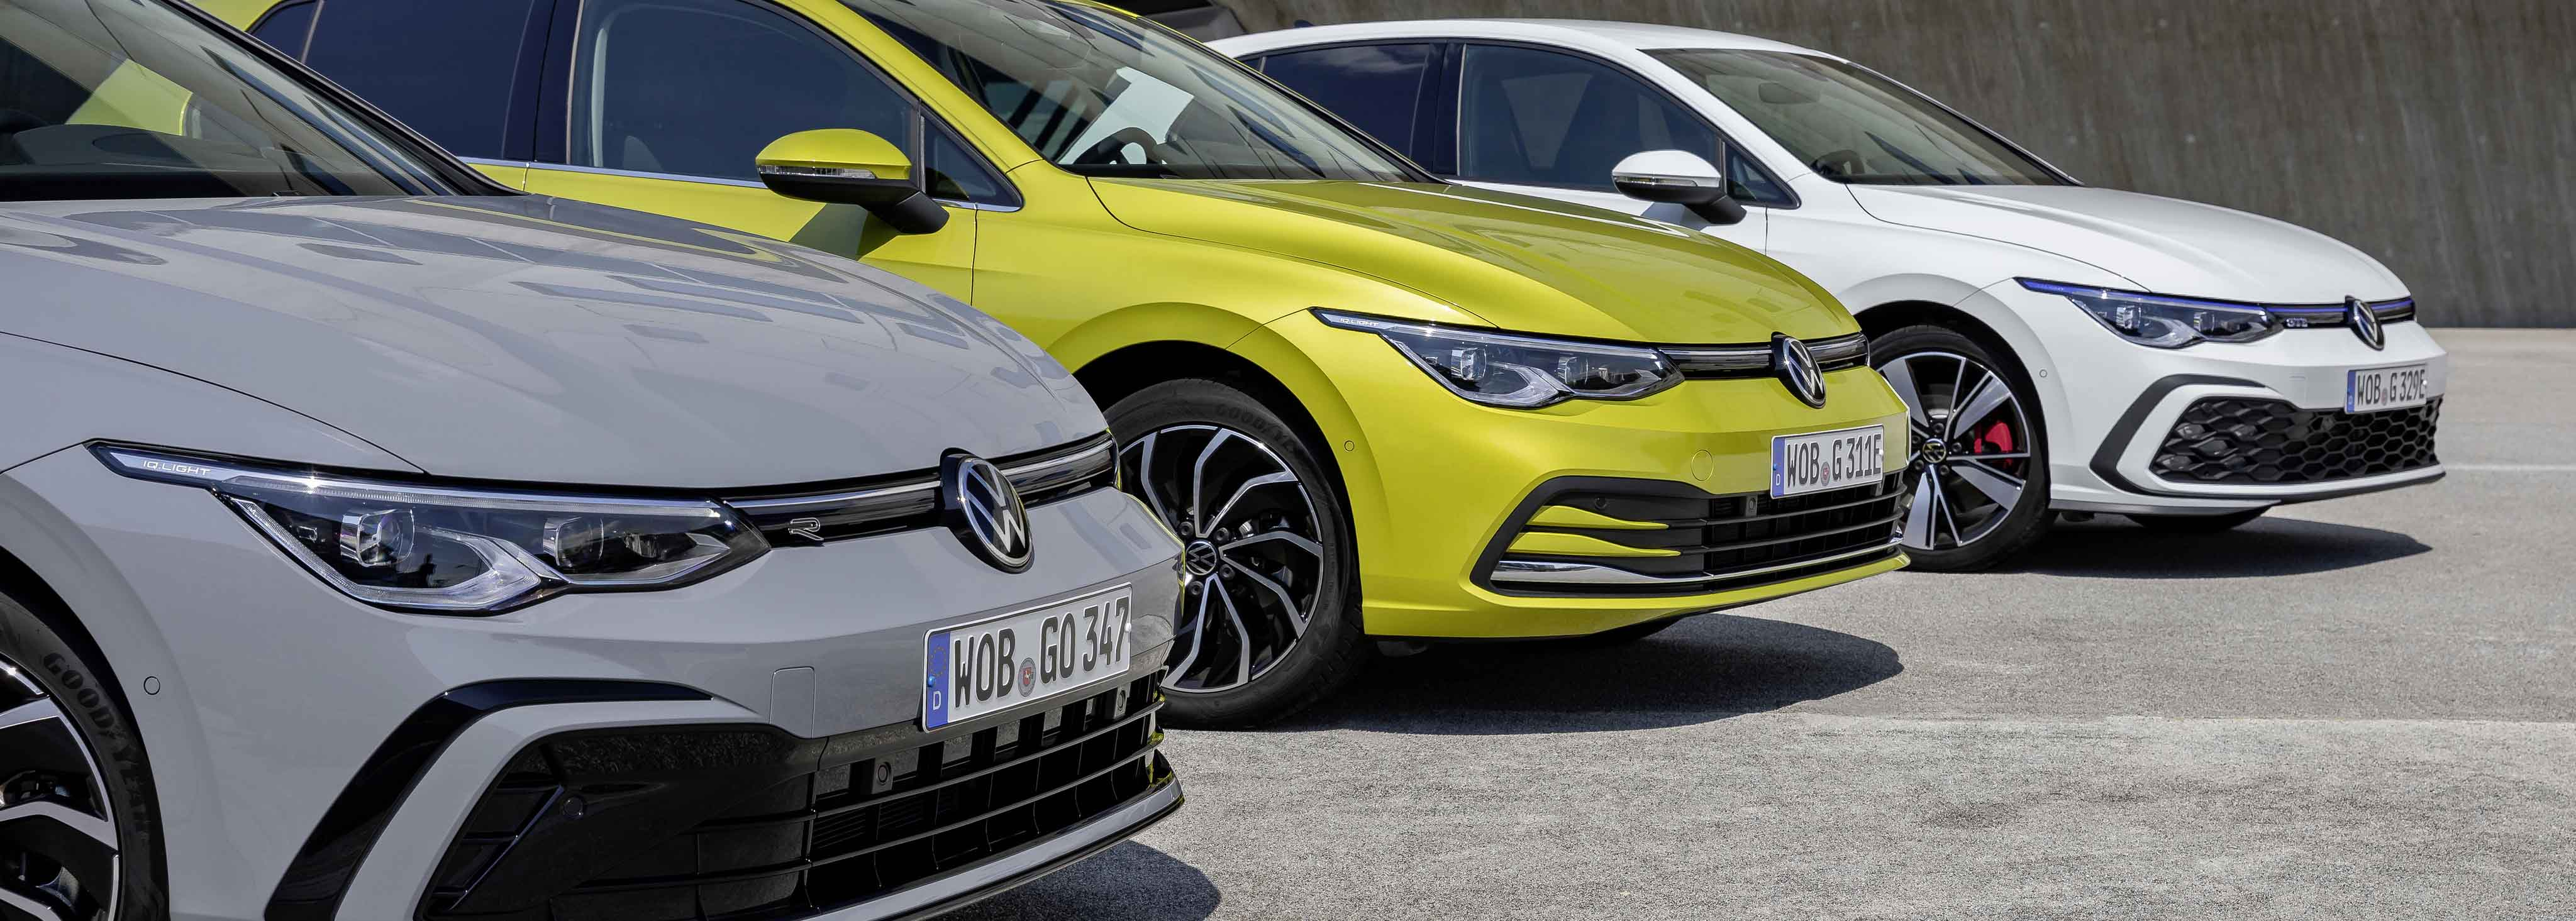 Volkswagen 2021 plans: A busy year ahead for Volkswagen SA